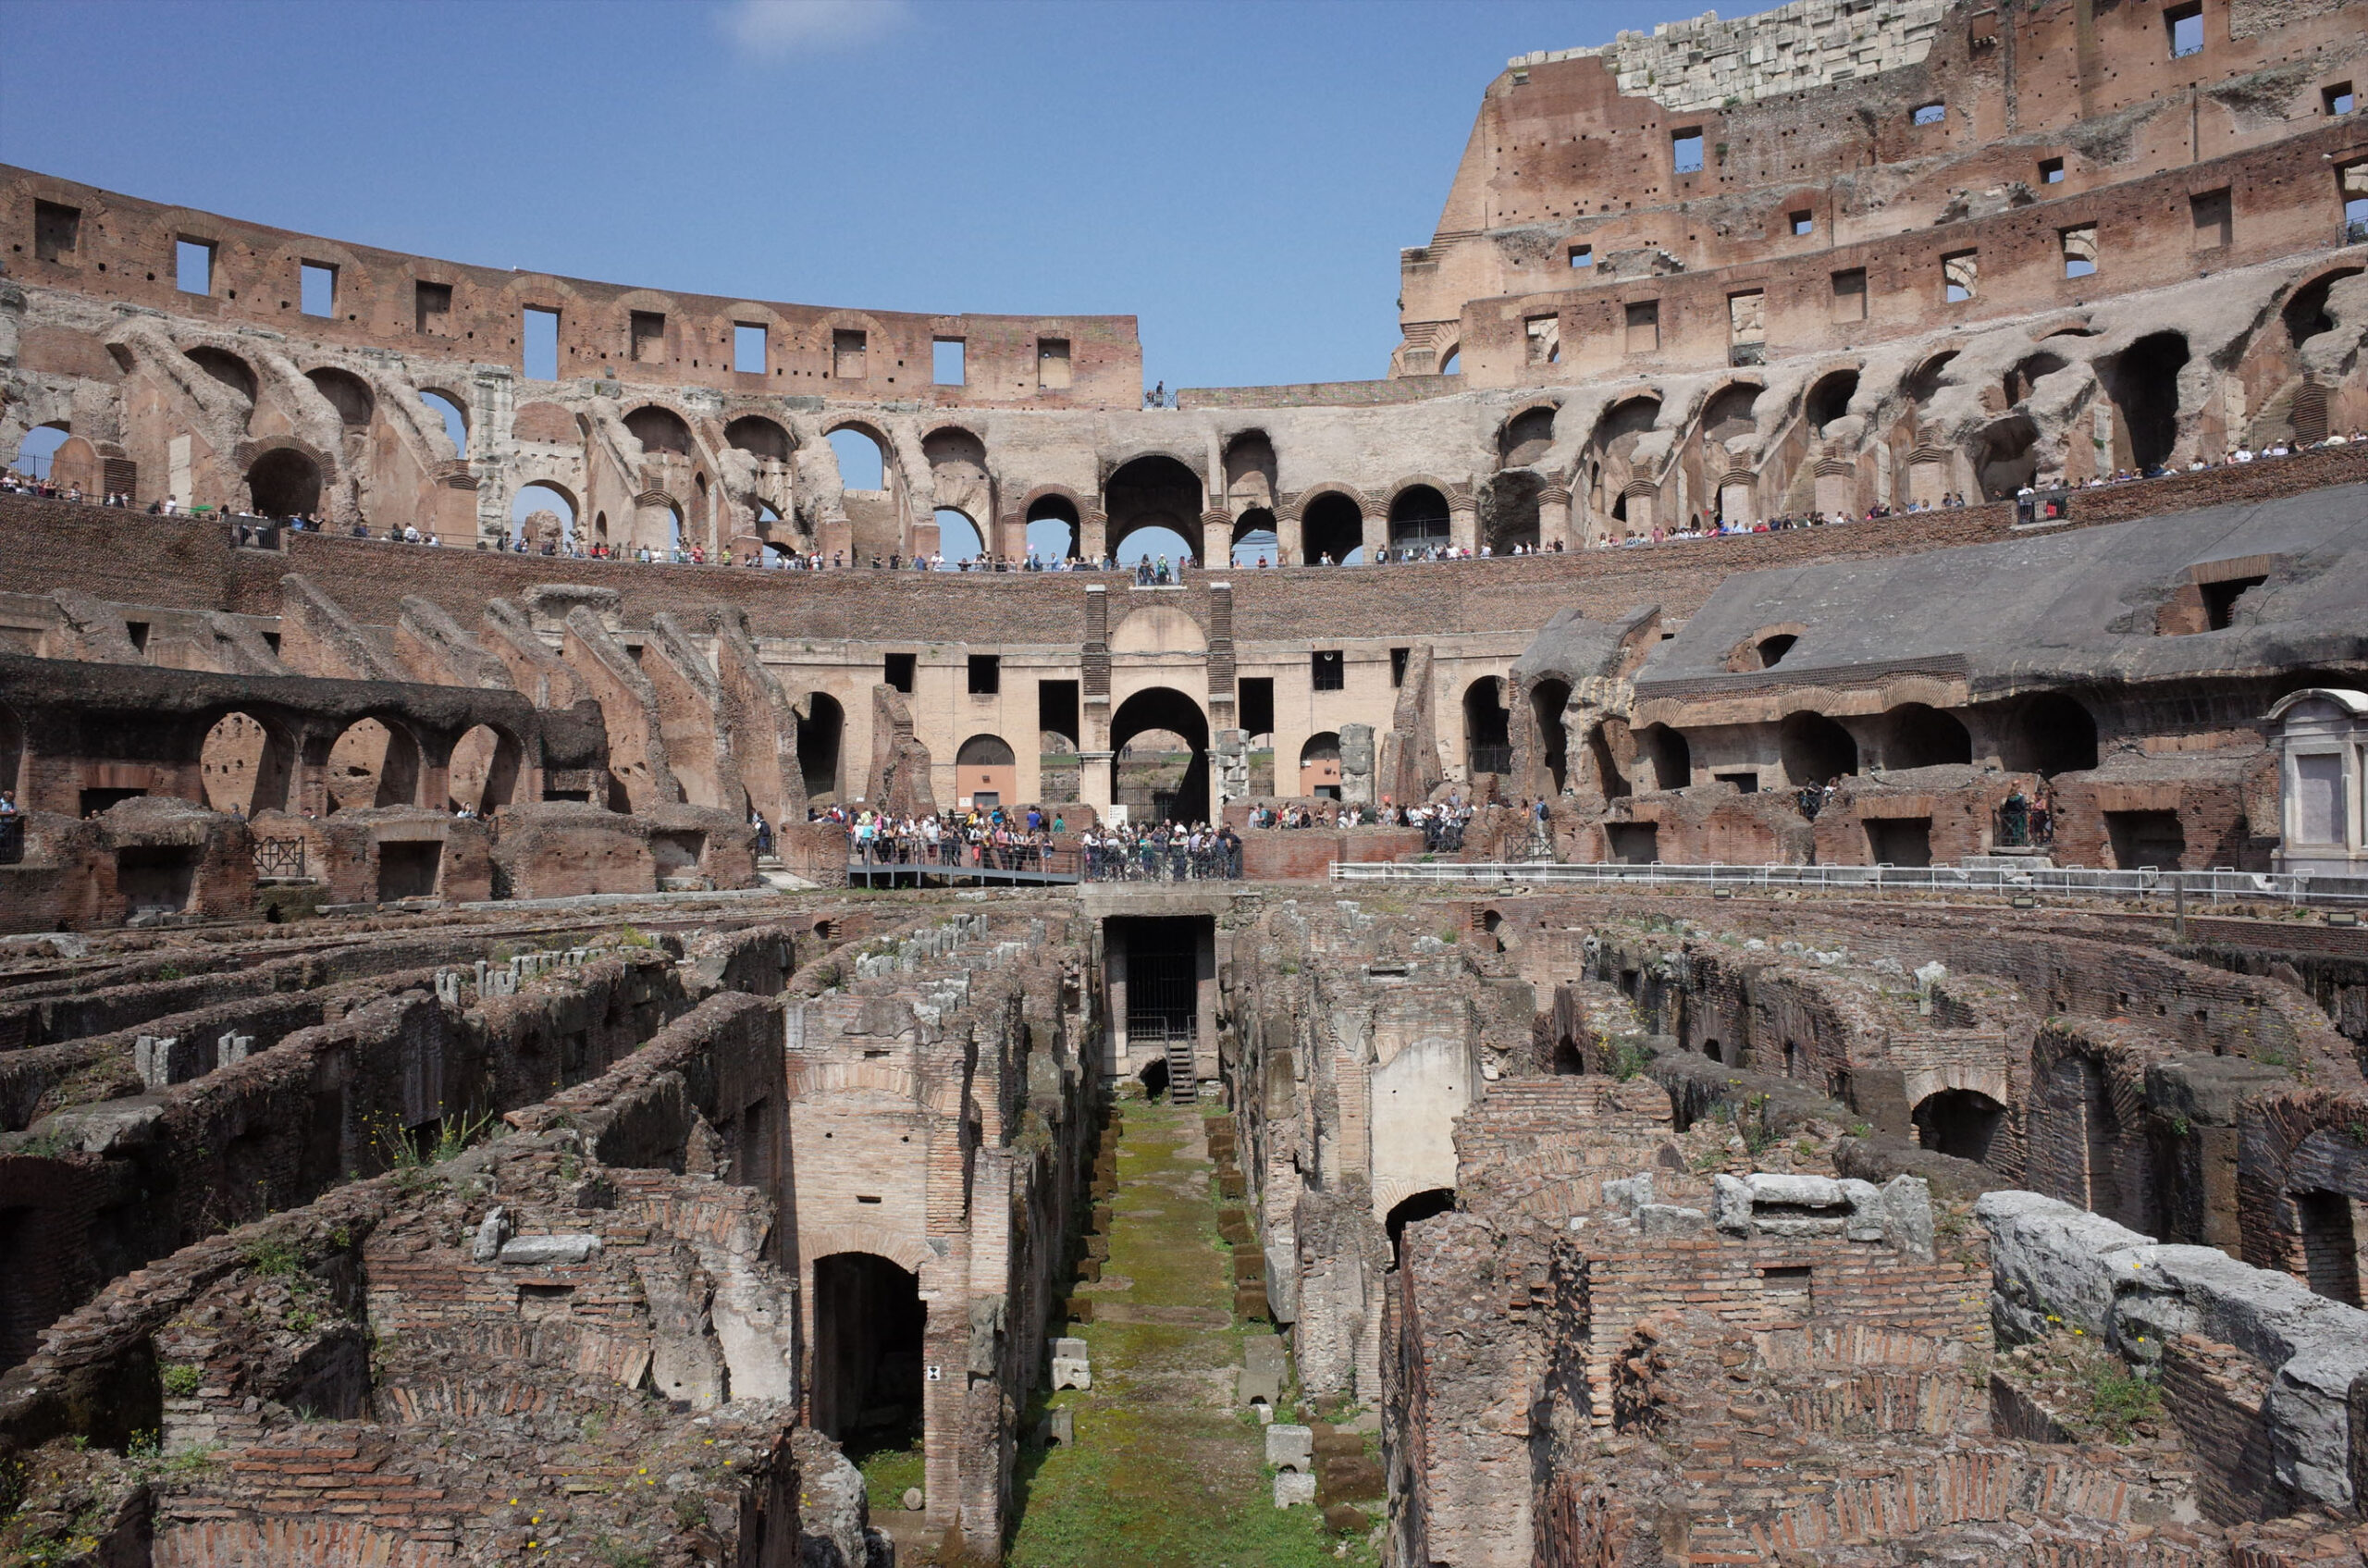 This Week in Rome: 5 Ways to Experience Ancient Rome Remotely this Holiday Season